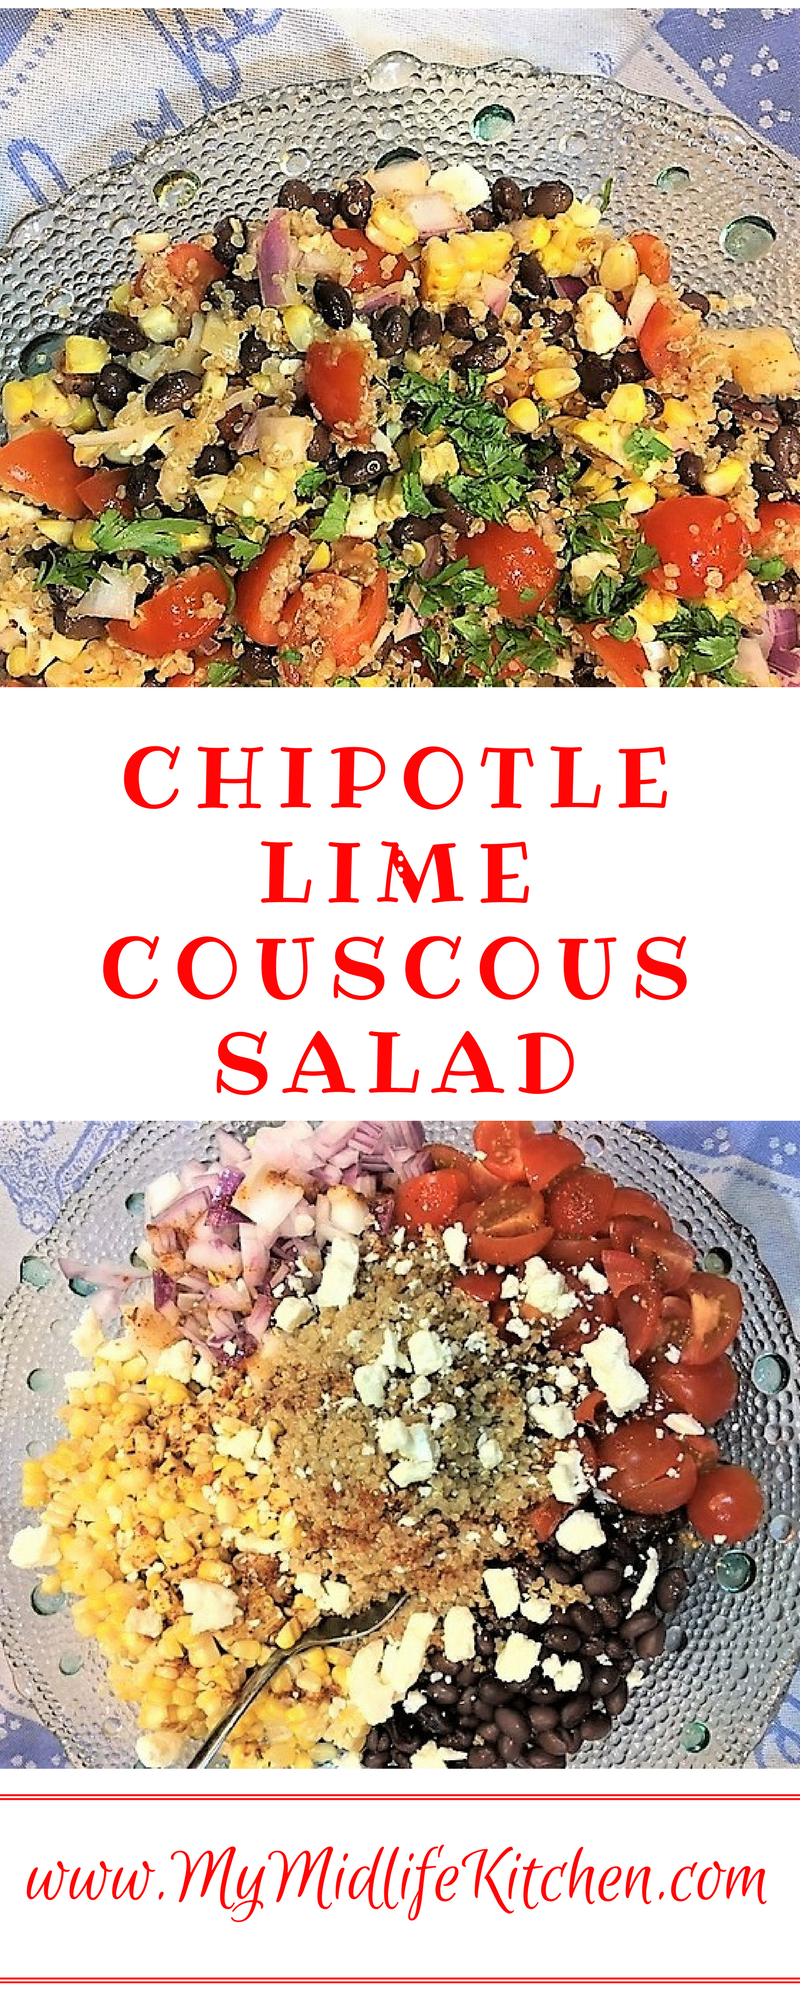 Chipotle-Lime-Couscous-Salad